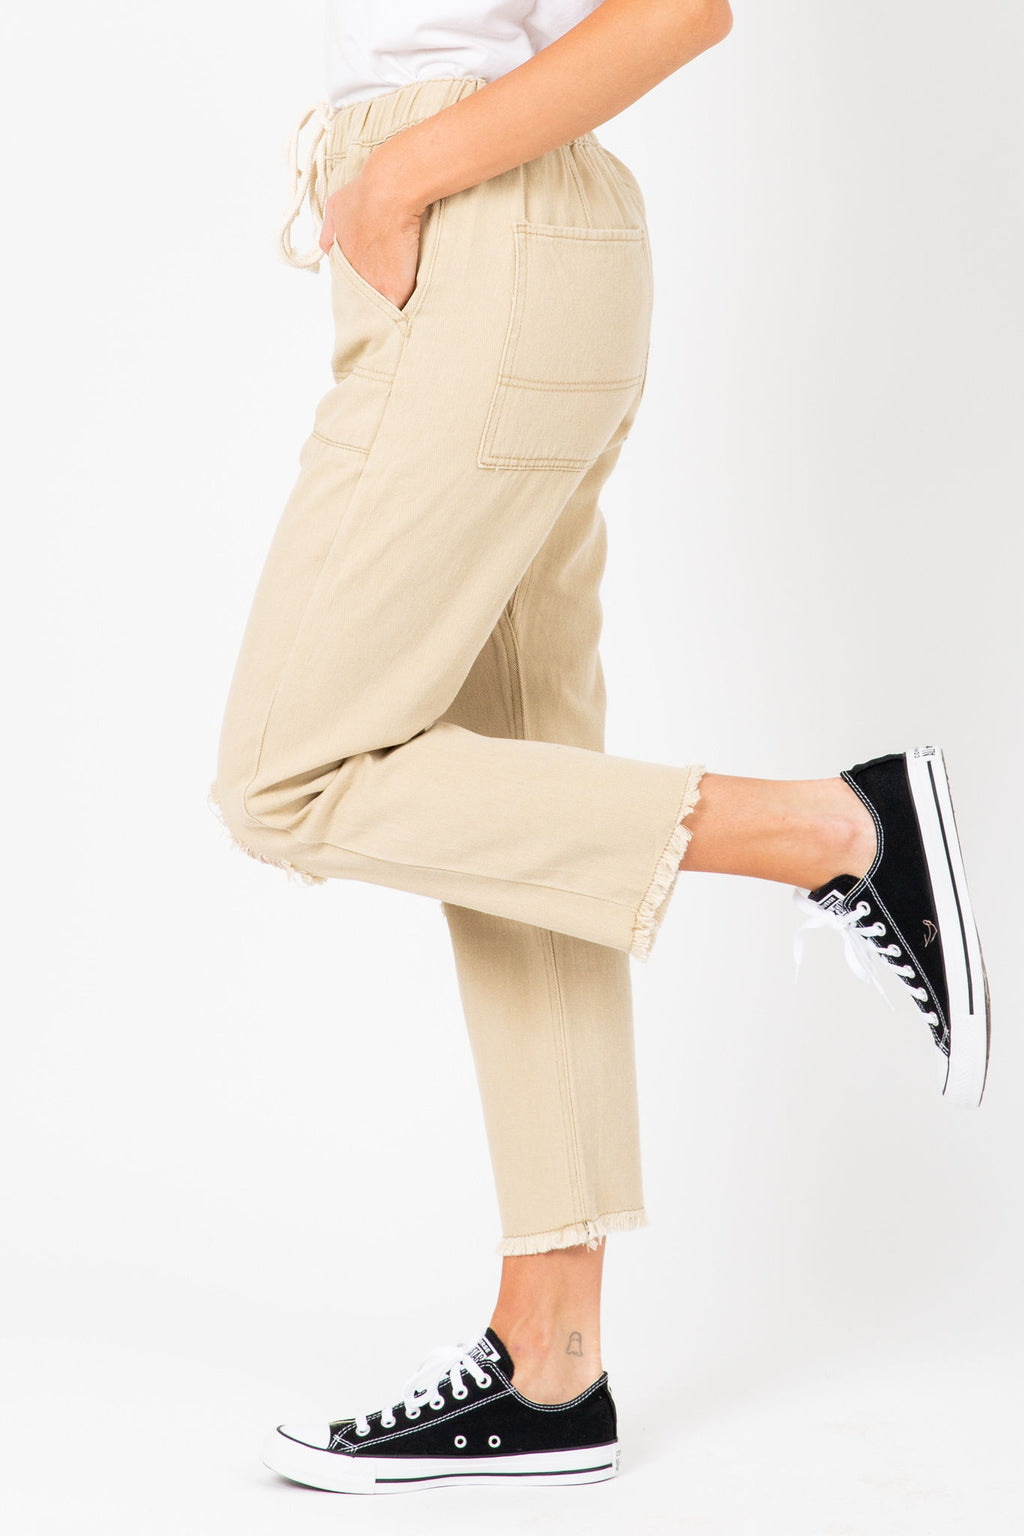 The Levy Distressed Trousers in Tan, studio shoot; side view